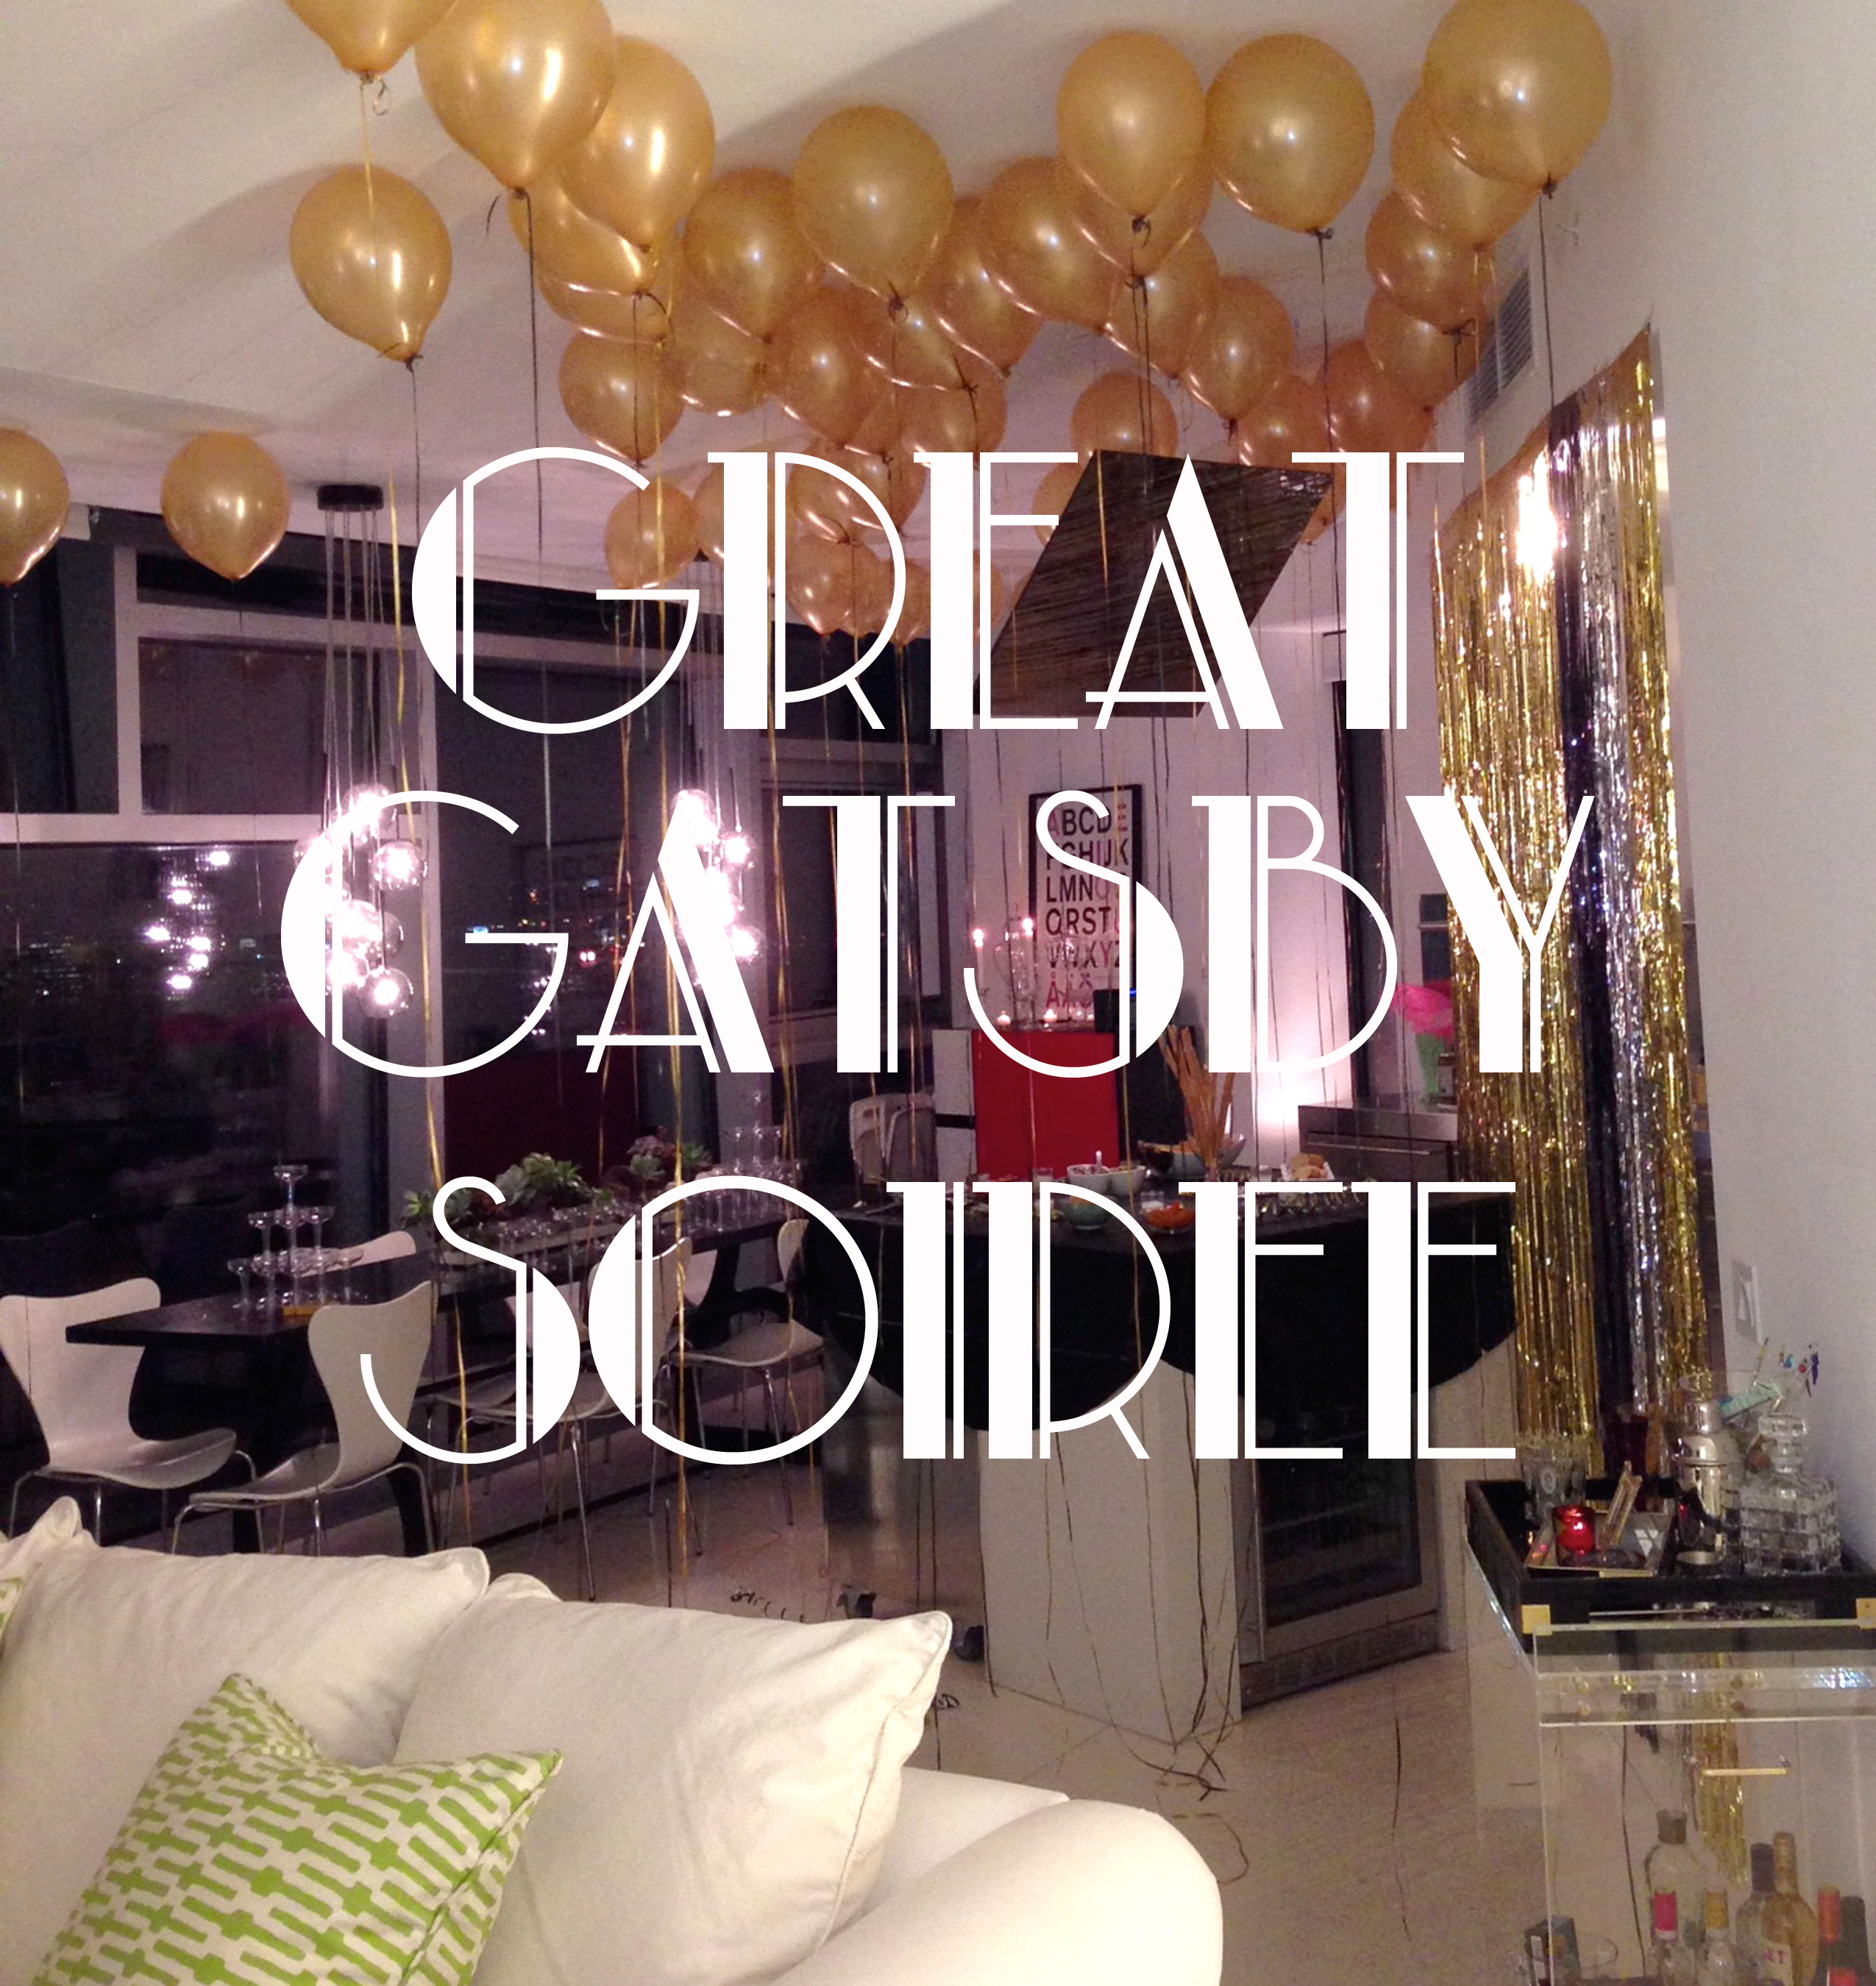 343469909054978531 additionally Blackandwhitefirstbirthday besides Funny Birthday Quotes furthermore Modern Black Gold Christmas Party as well 808. on oscar party ideas and recipes